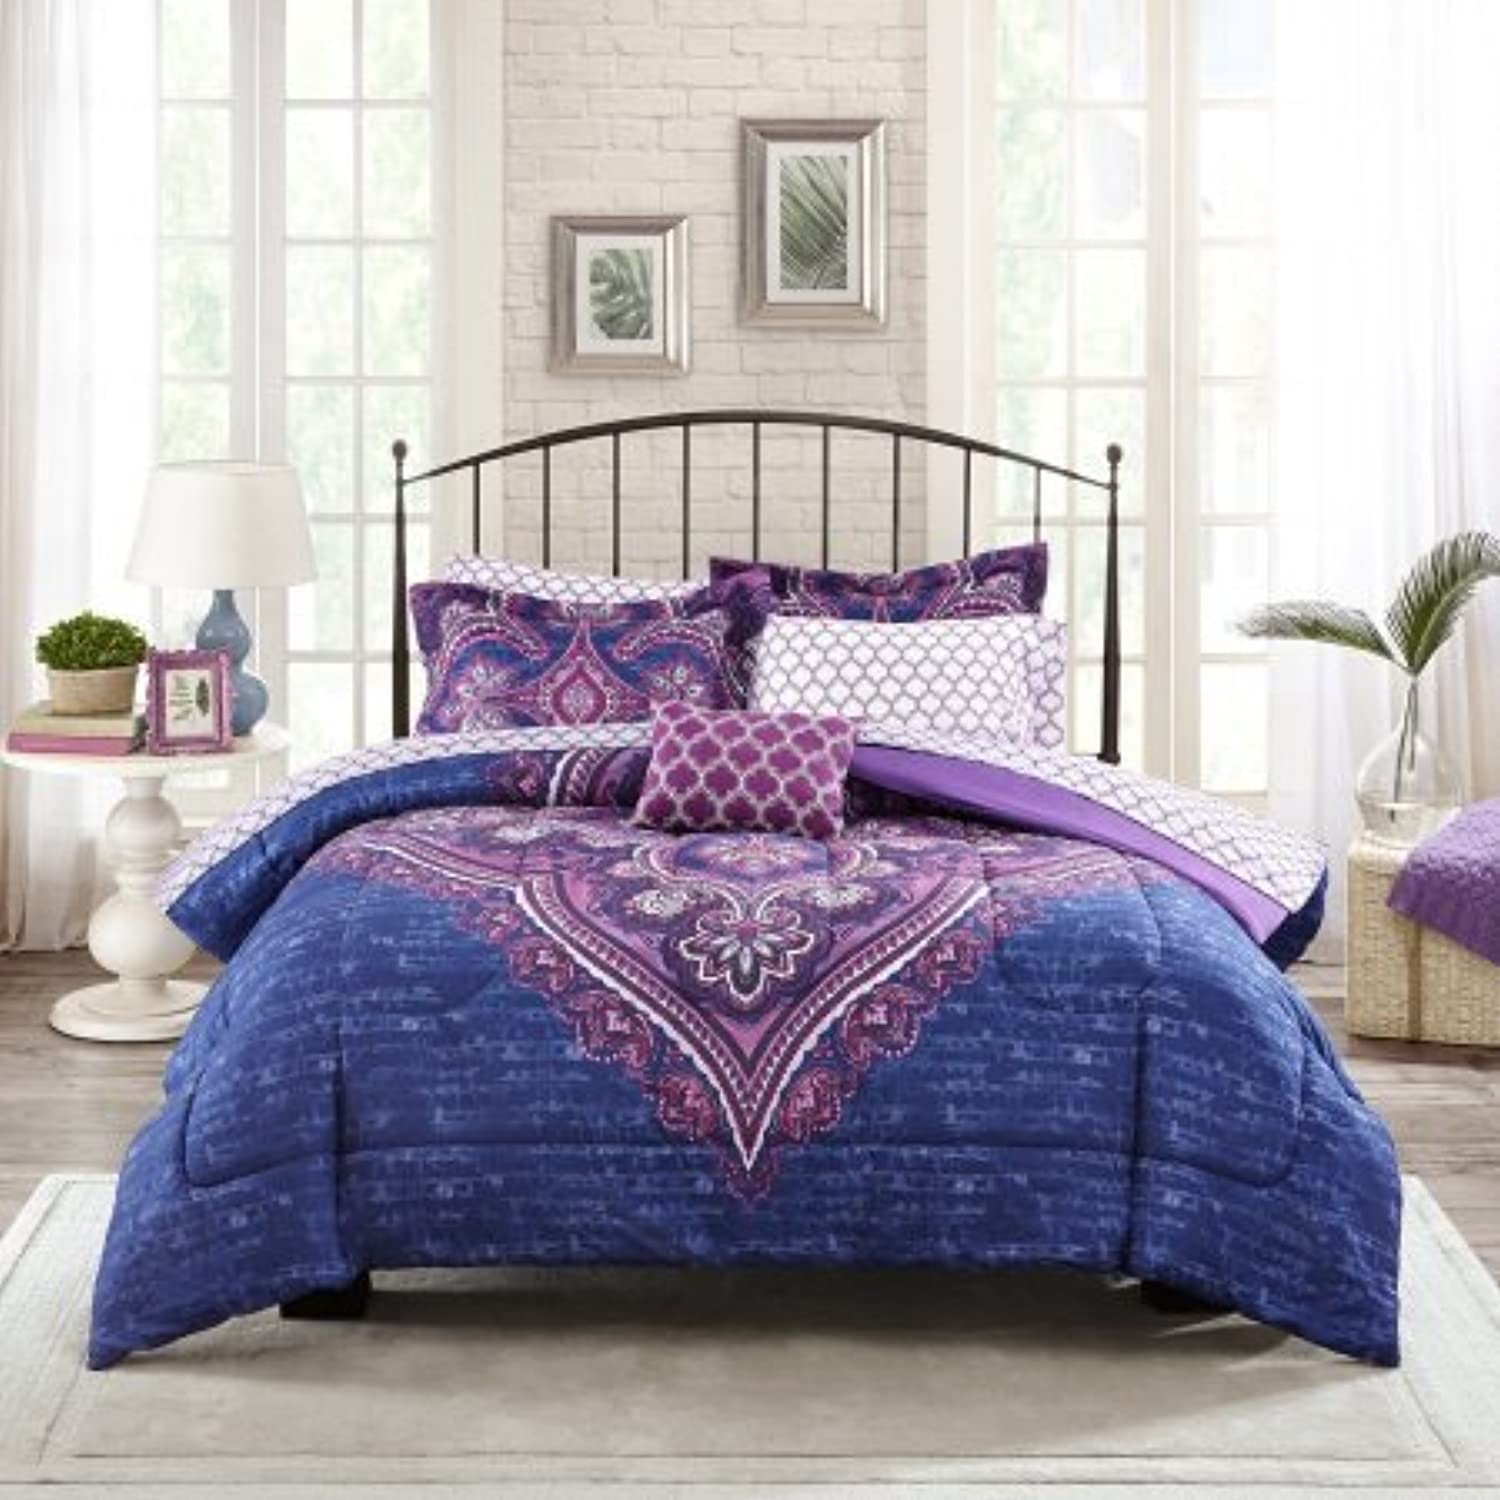 Mainstays Teens' Grace Purple Floral Reversible Medallion Bedding Queen Size Comforter Sets for Girls (6 Piece in a Bag)